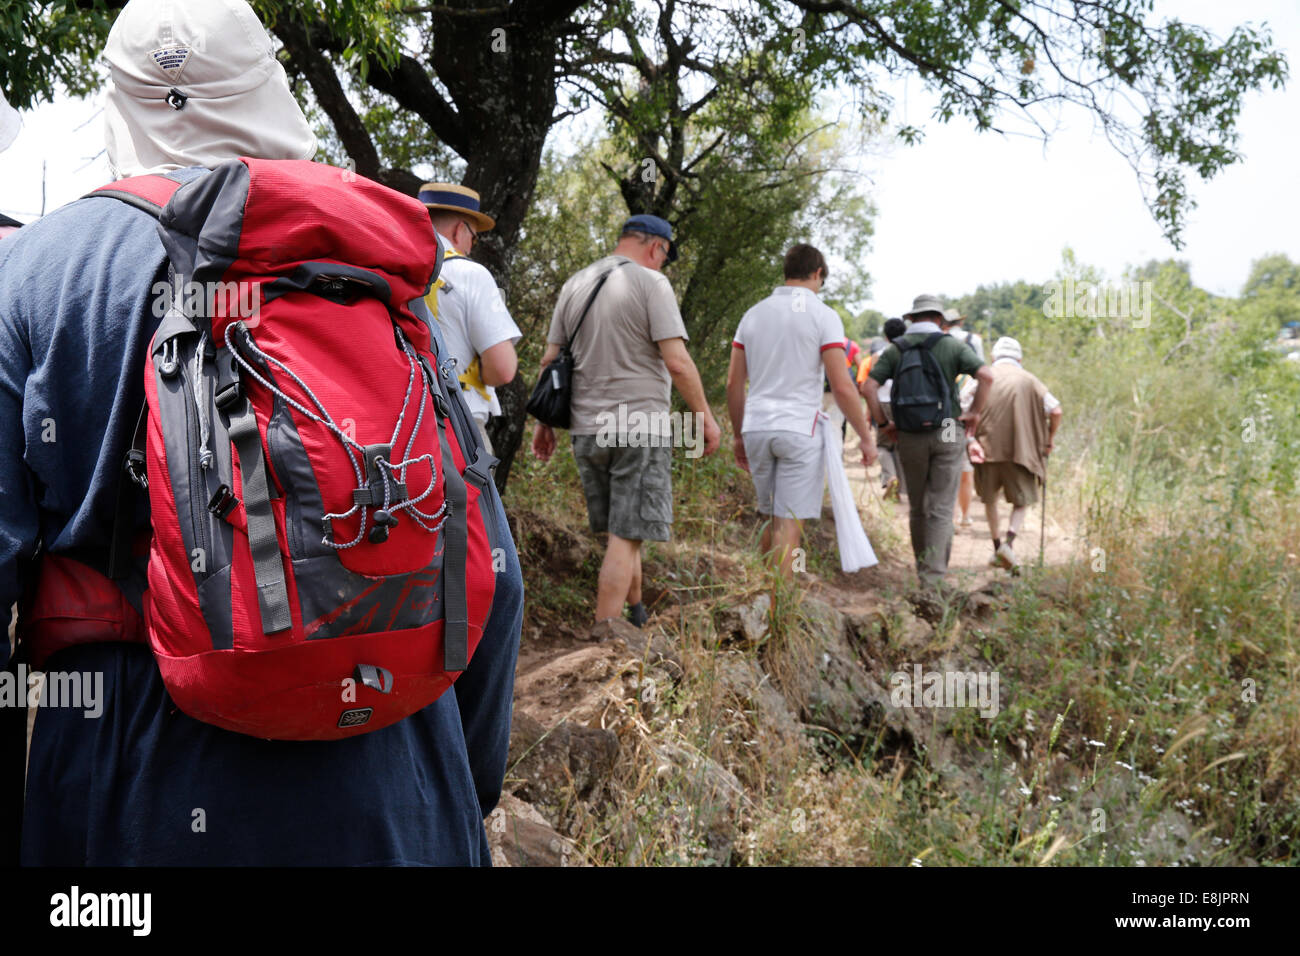 Pilgrimage in Holy Land. Walk in Golan Heights. - Stock Image